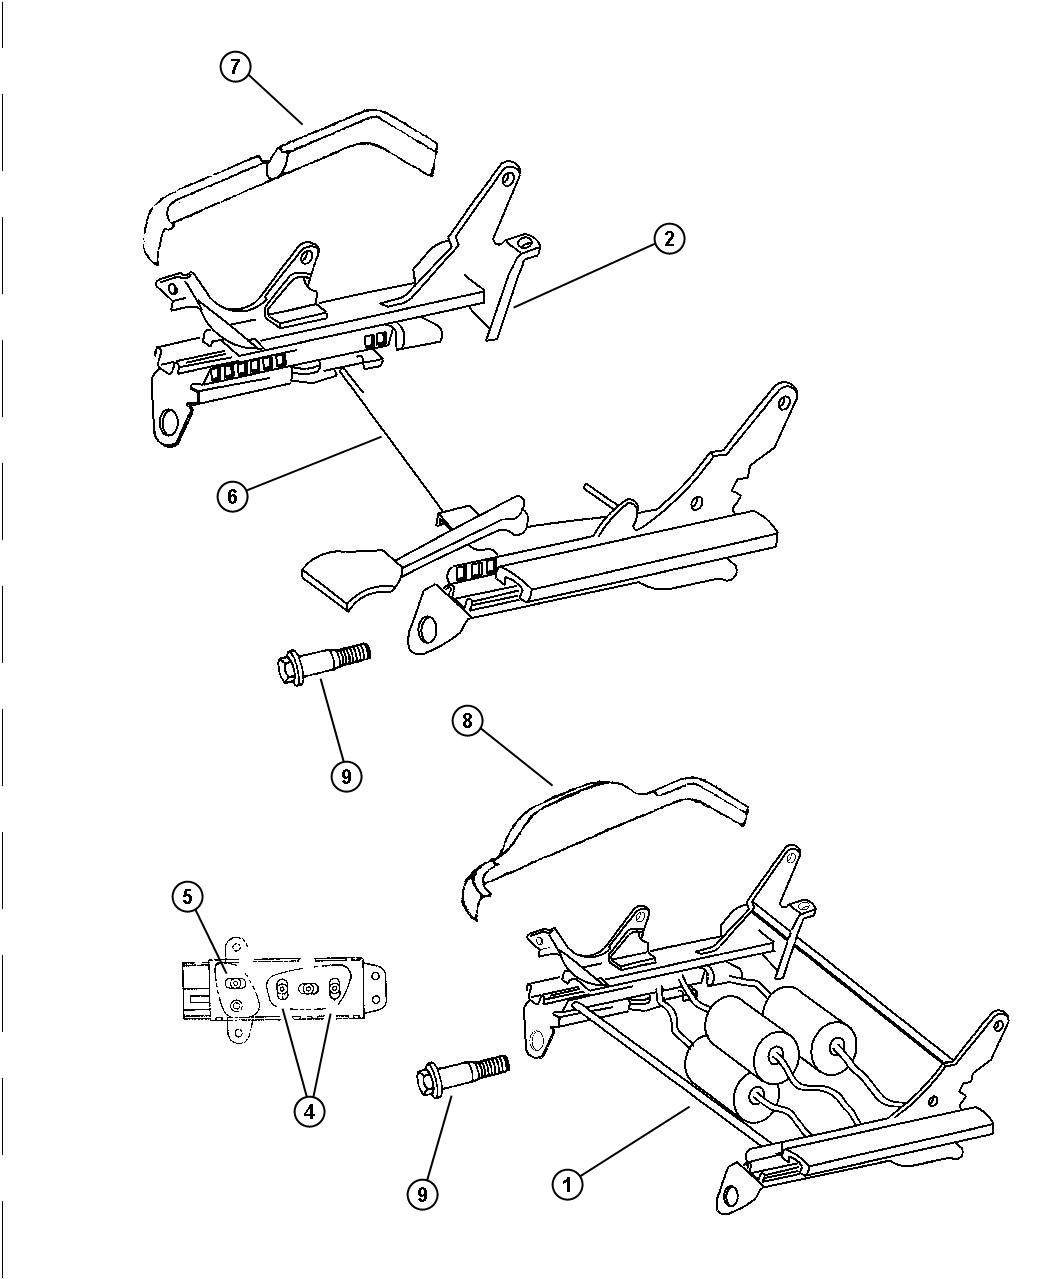 Chrysler LHS Used for: SCREW AND WASHER. Hex Head. M10x1